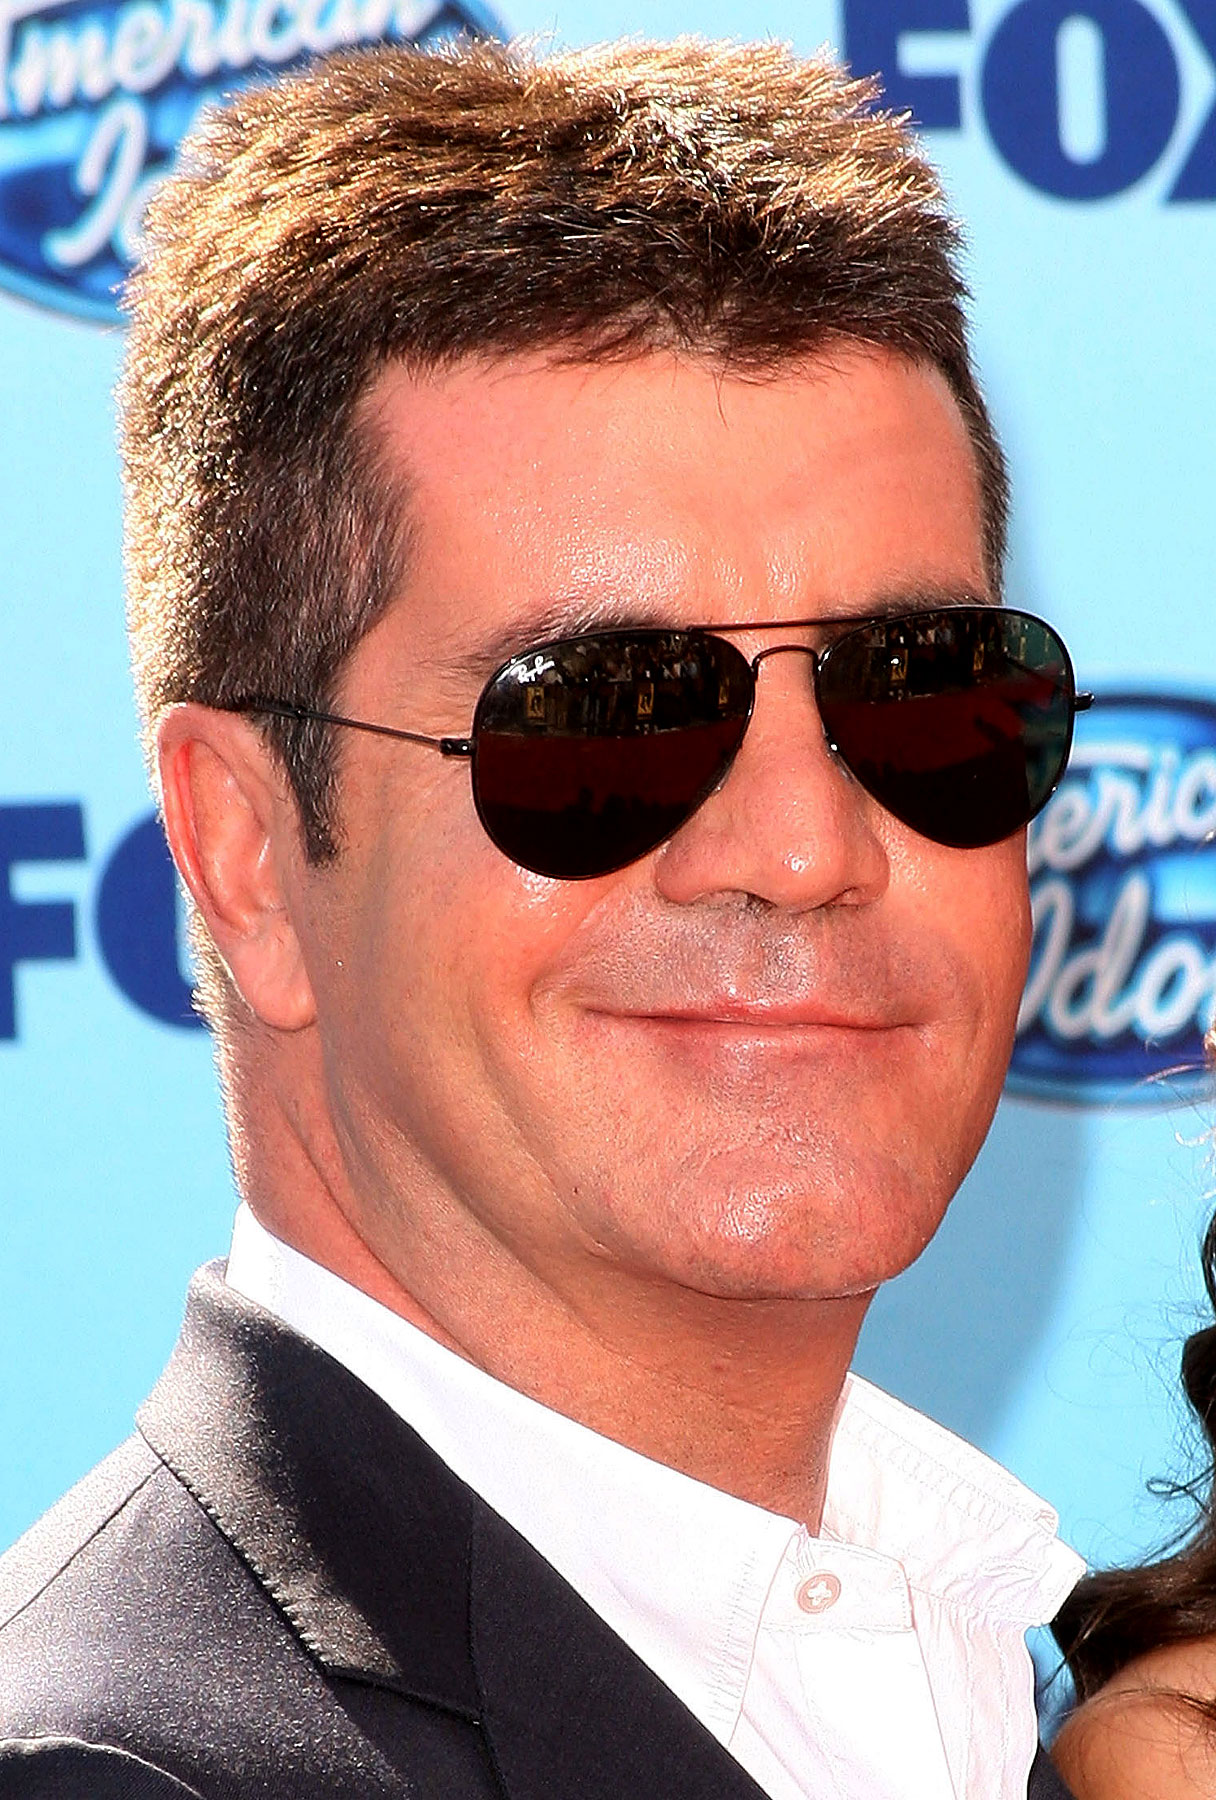 Simon Cowell: The $45 Million Man?